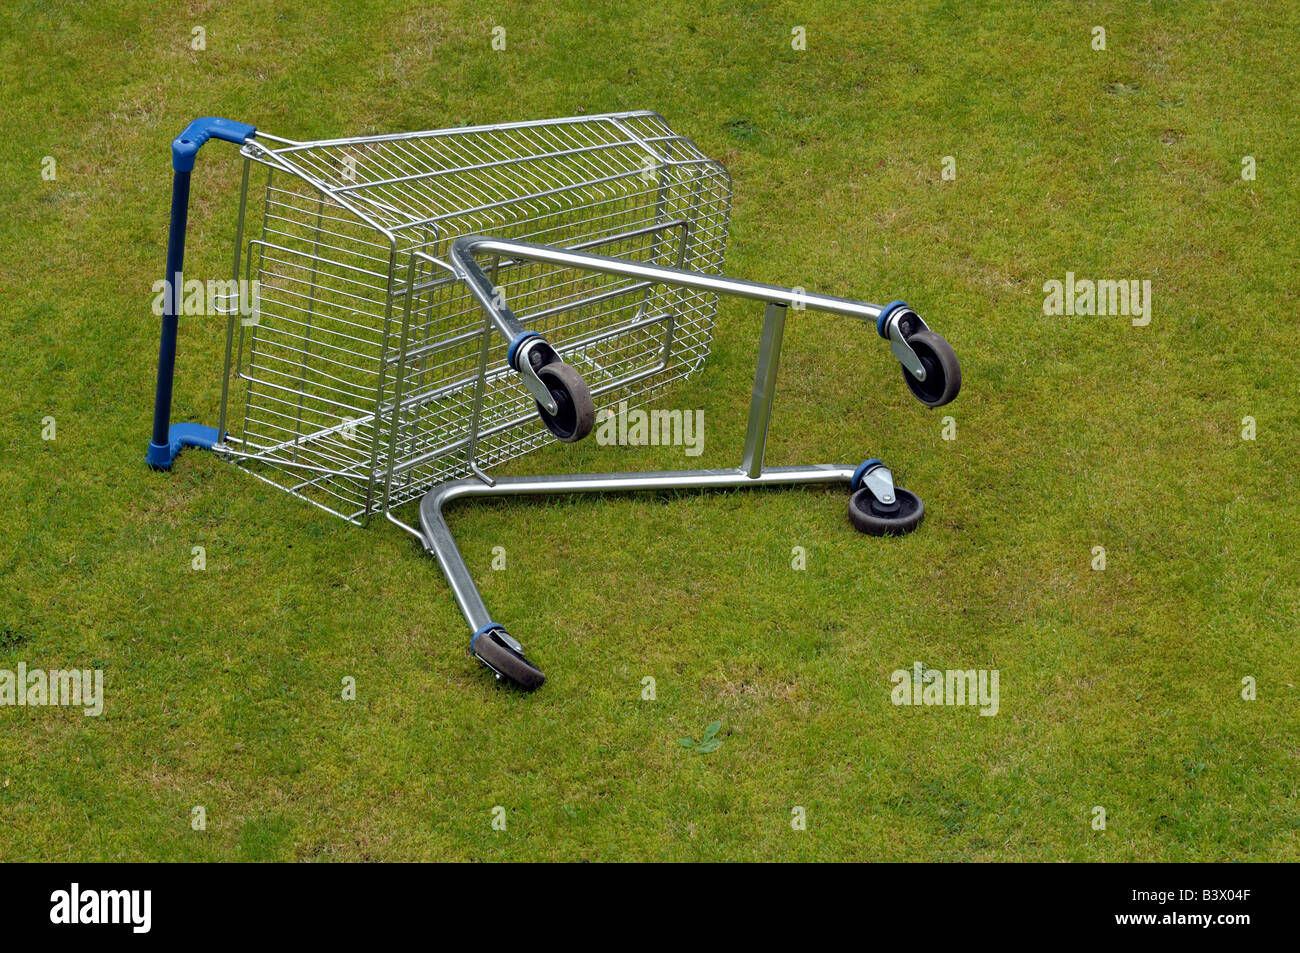 Discarded shopping trolley - Stock Image